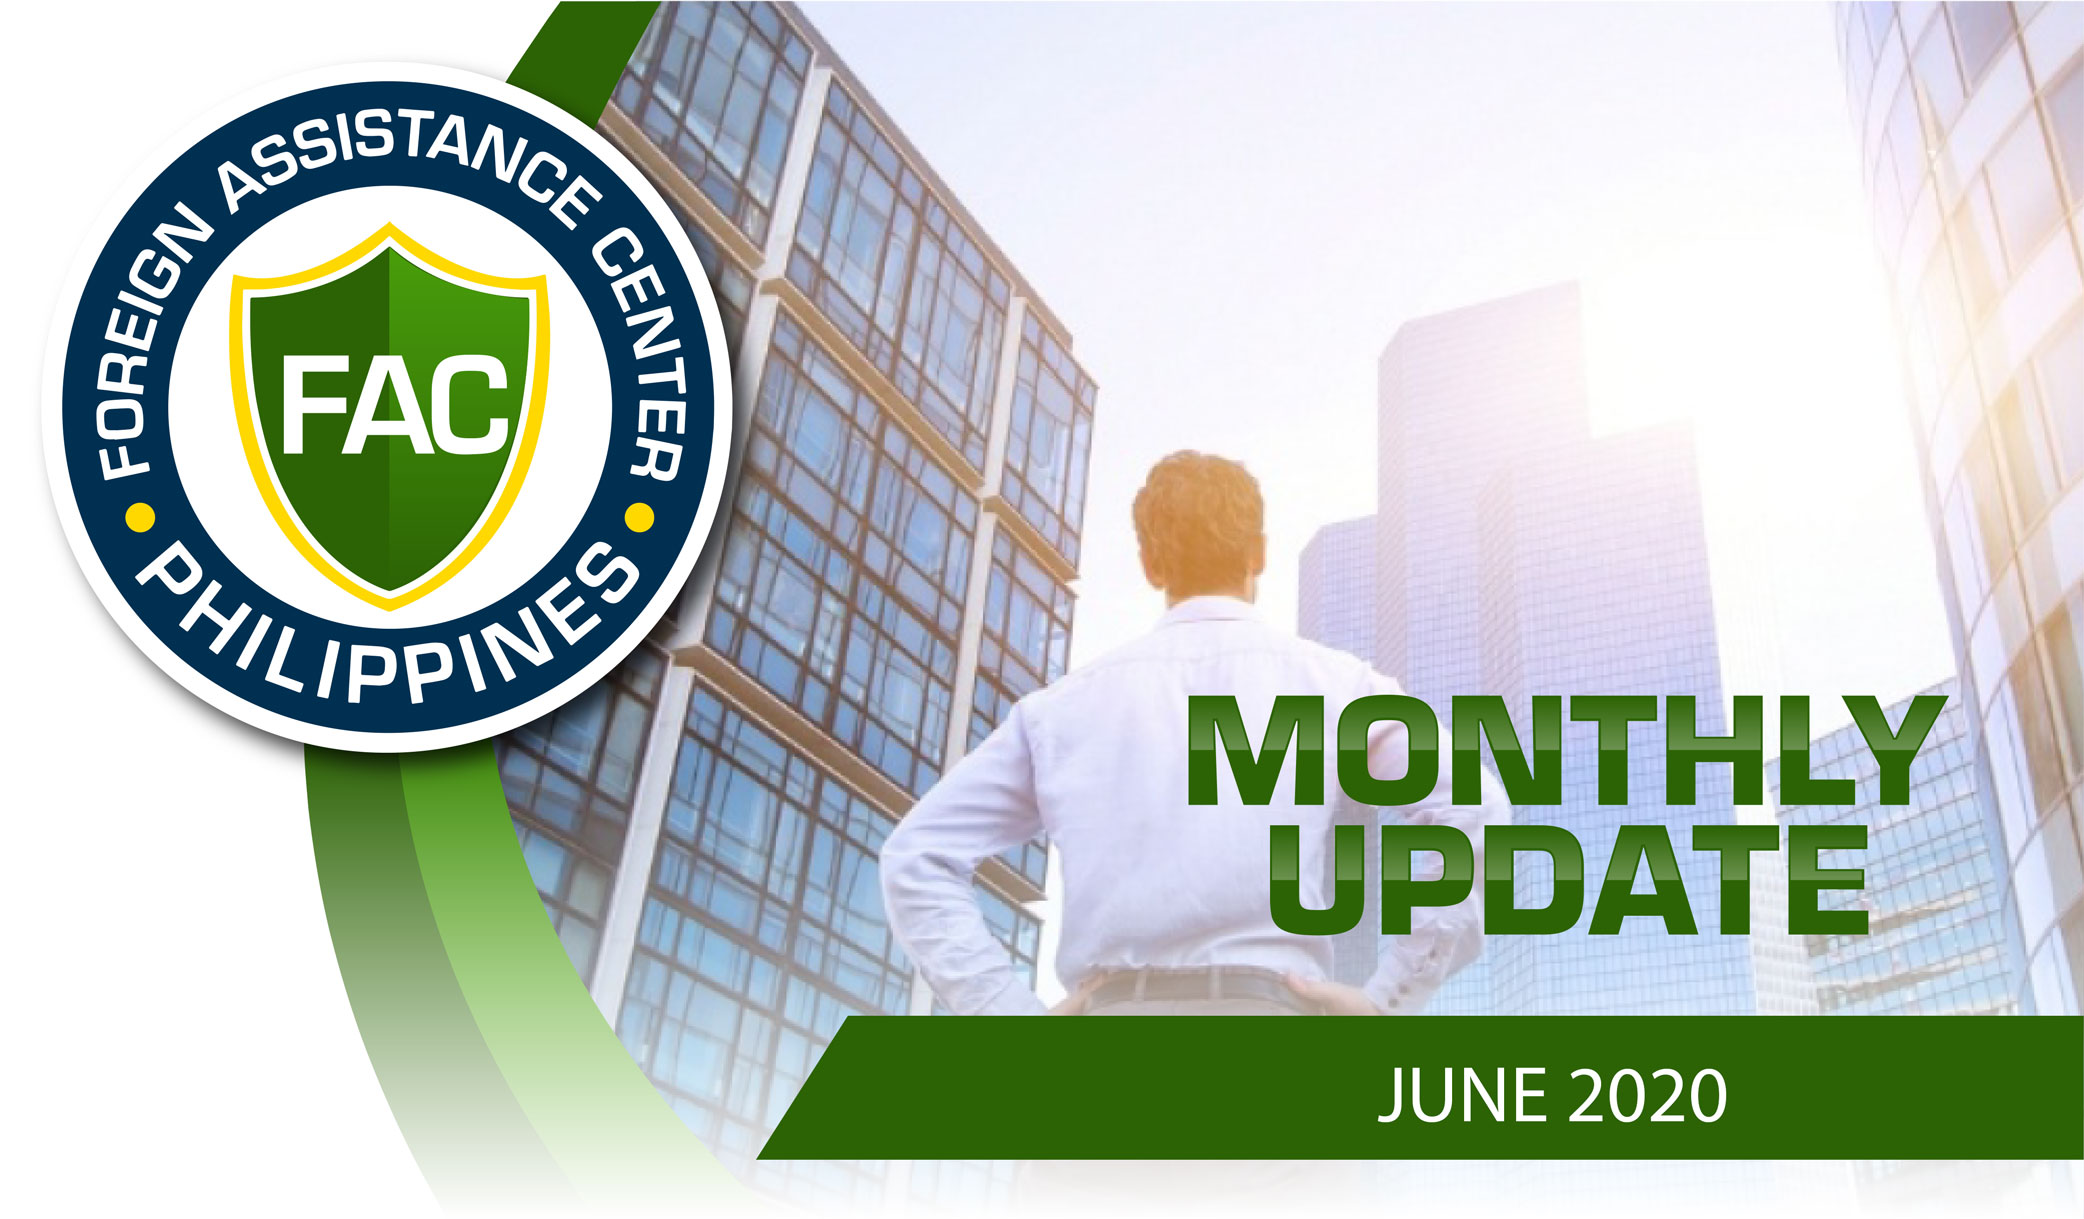 FAC-Philippines---Monthly-Update-JUN